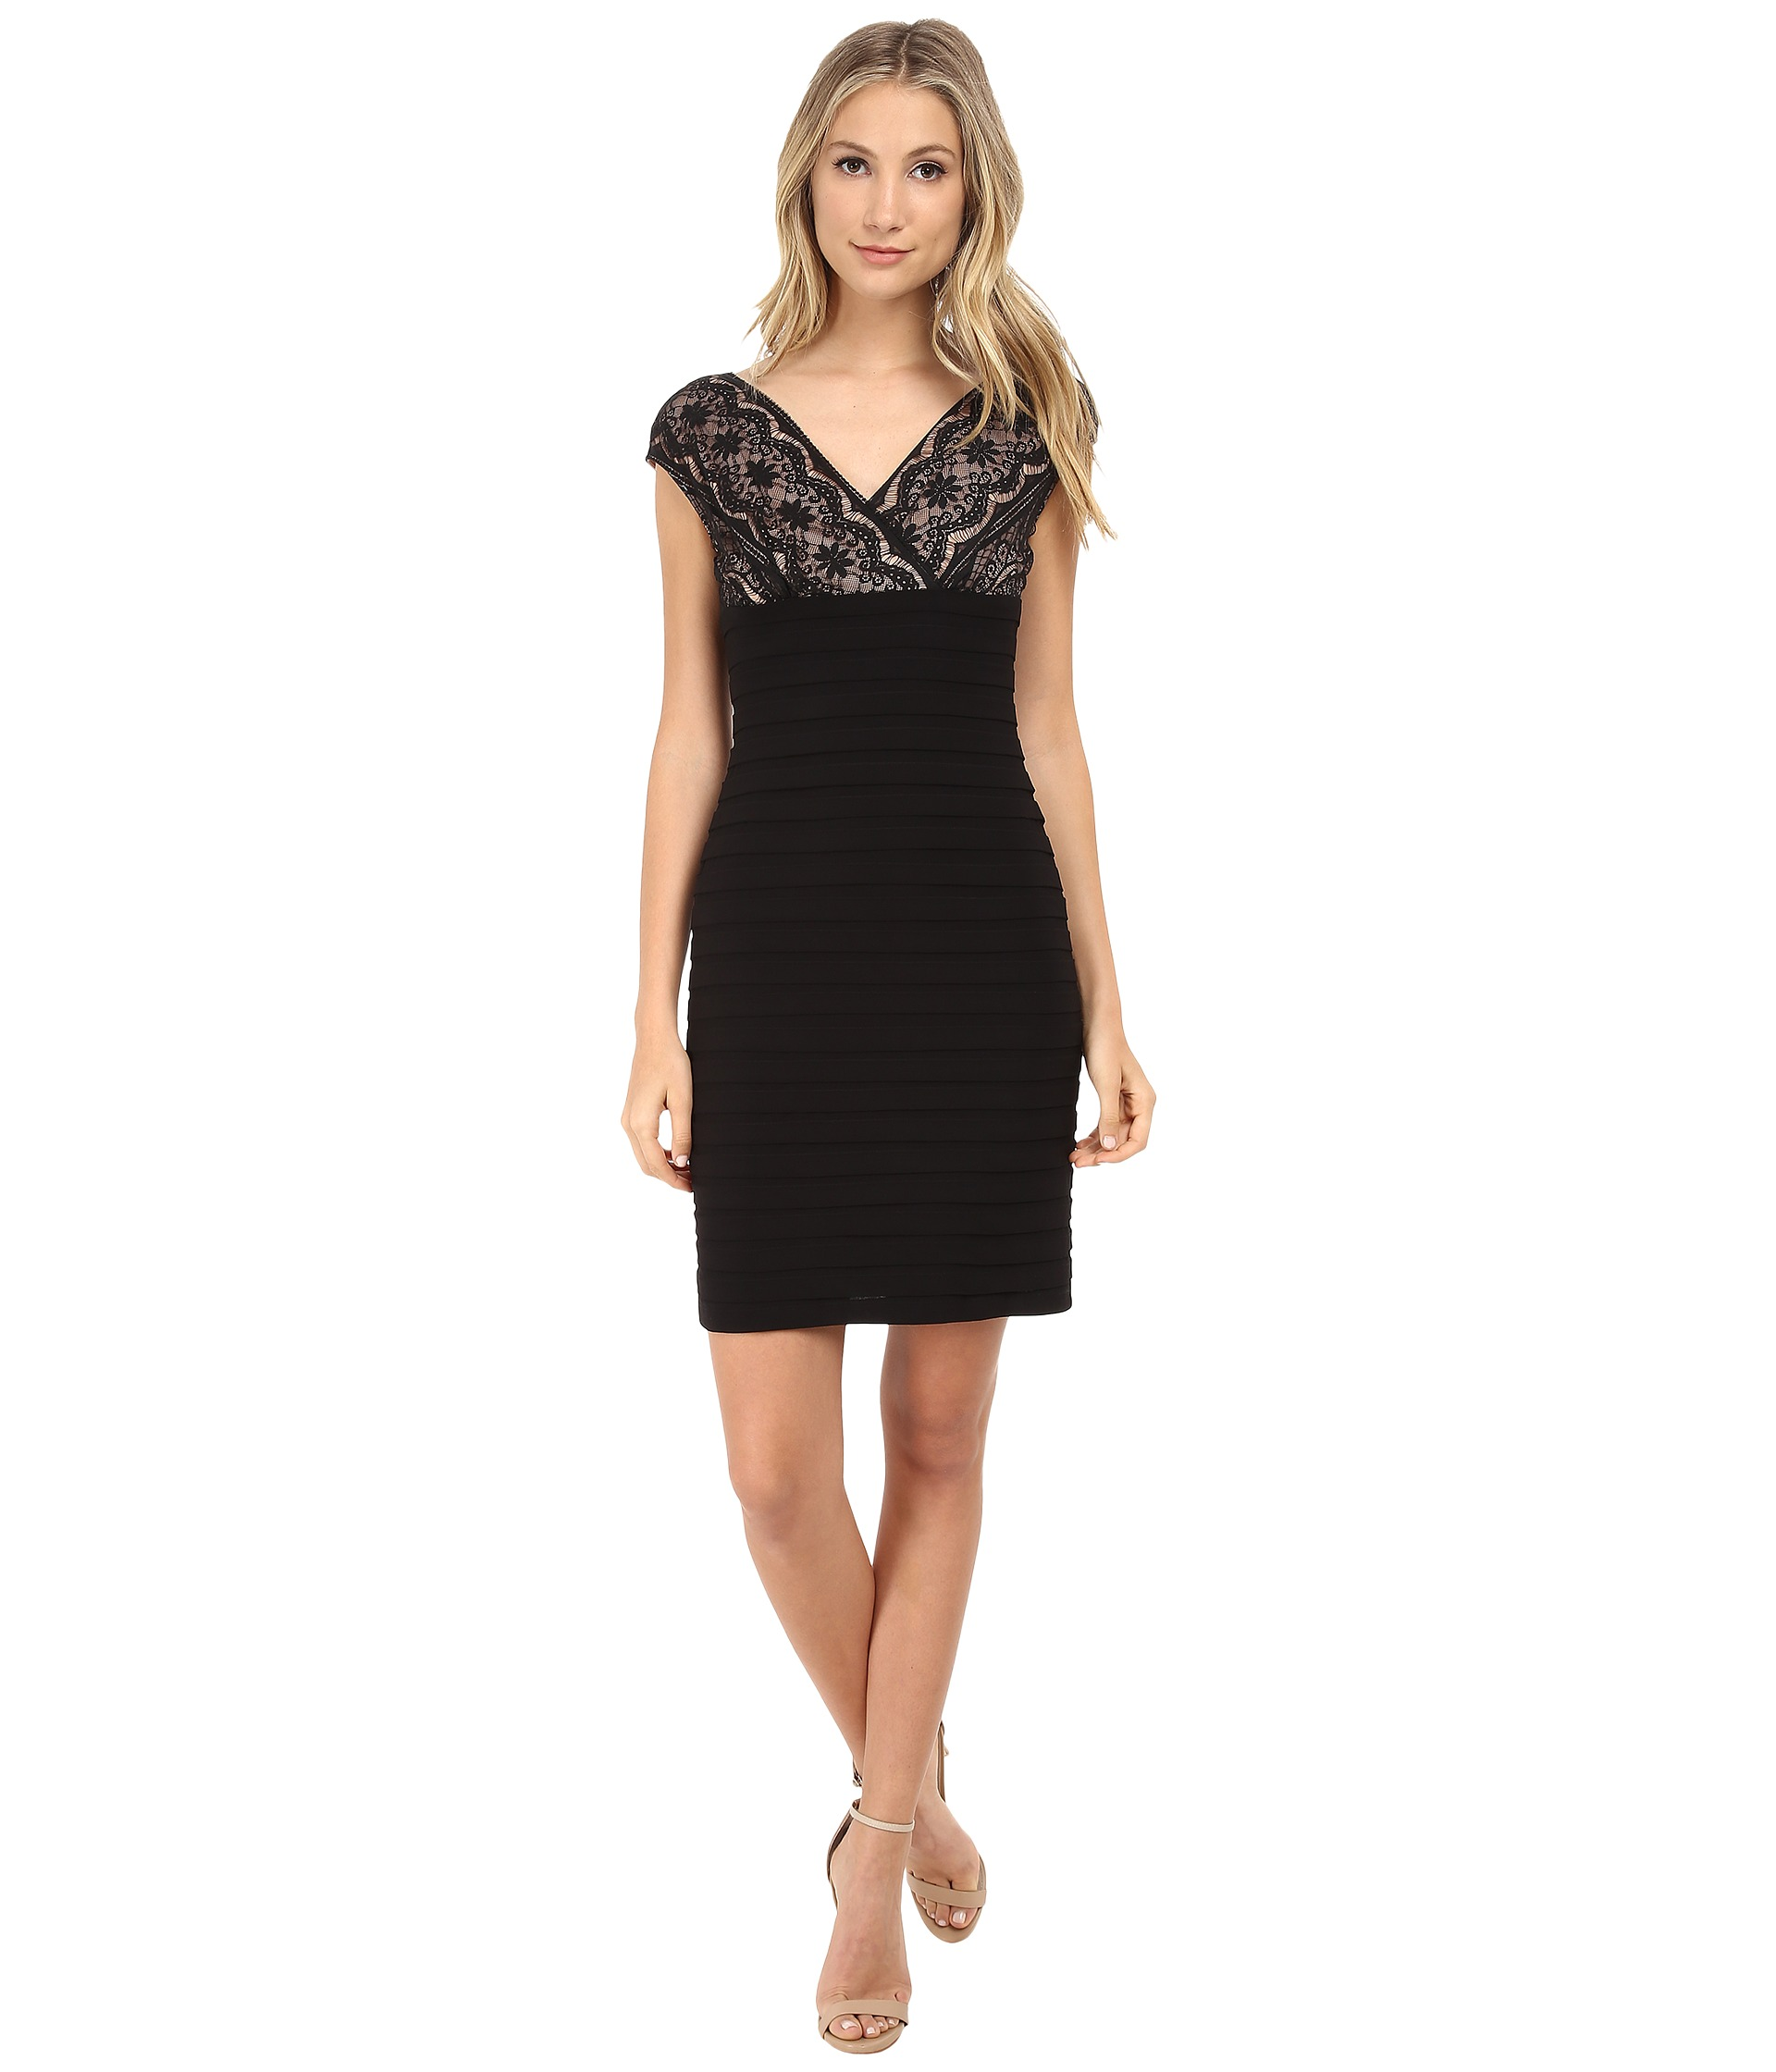 Adrianna Papell Lace Banded Dress - 6pm.com